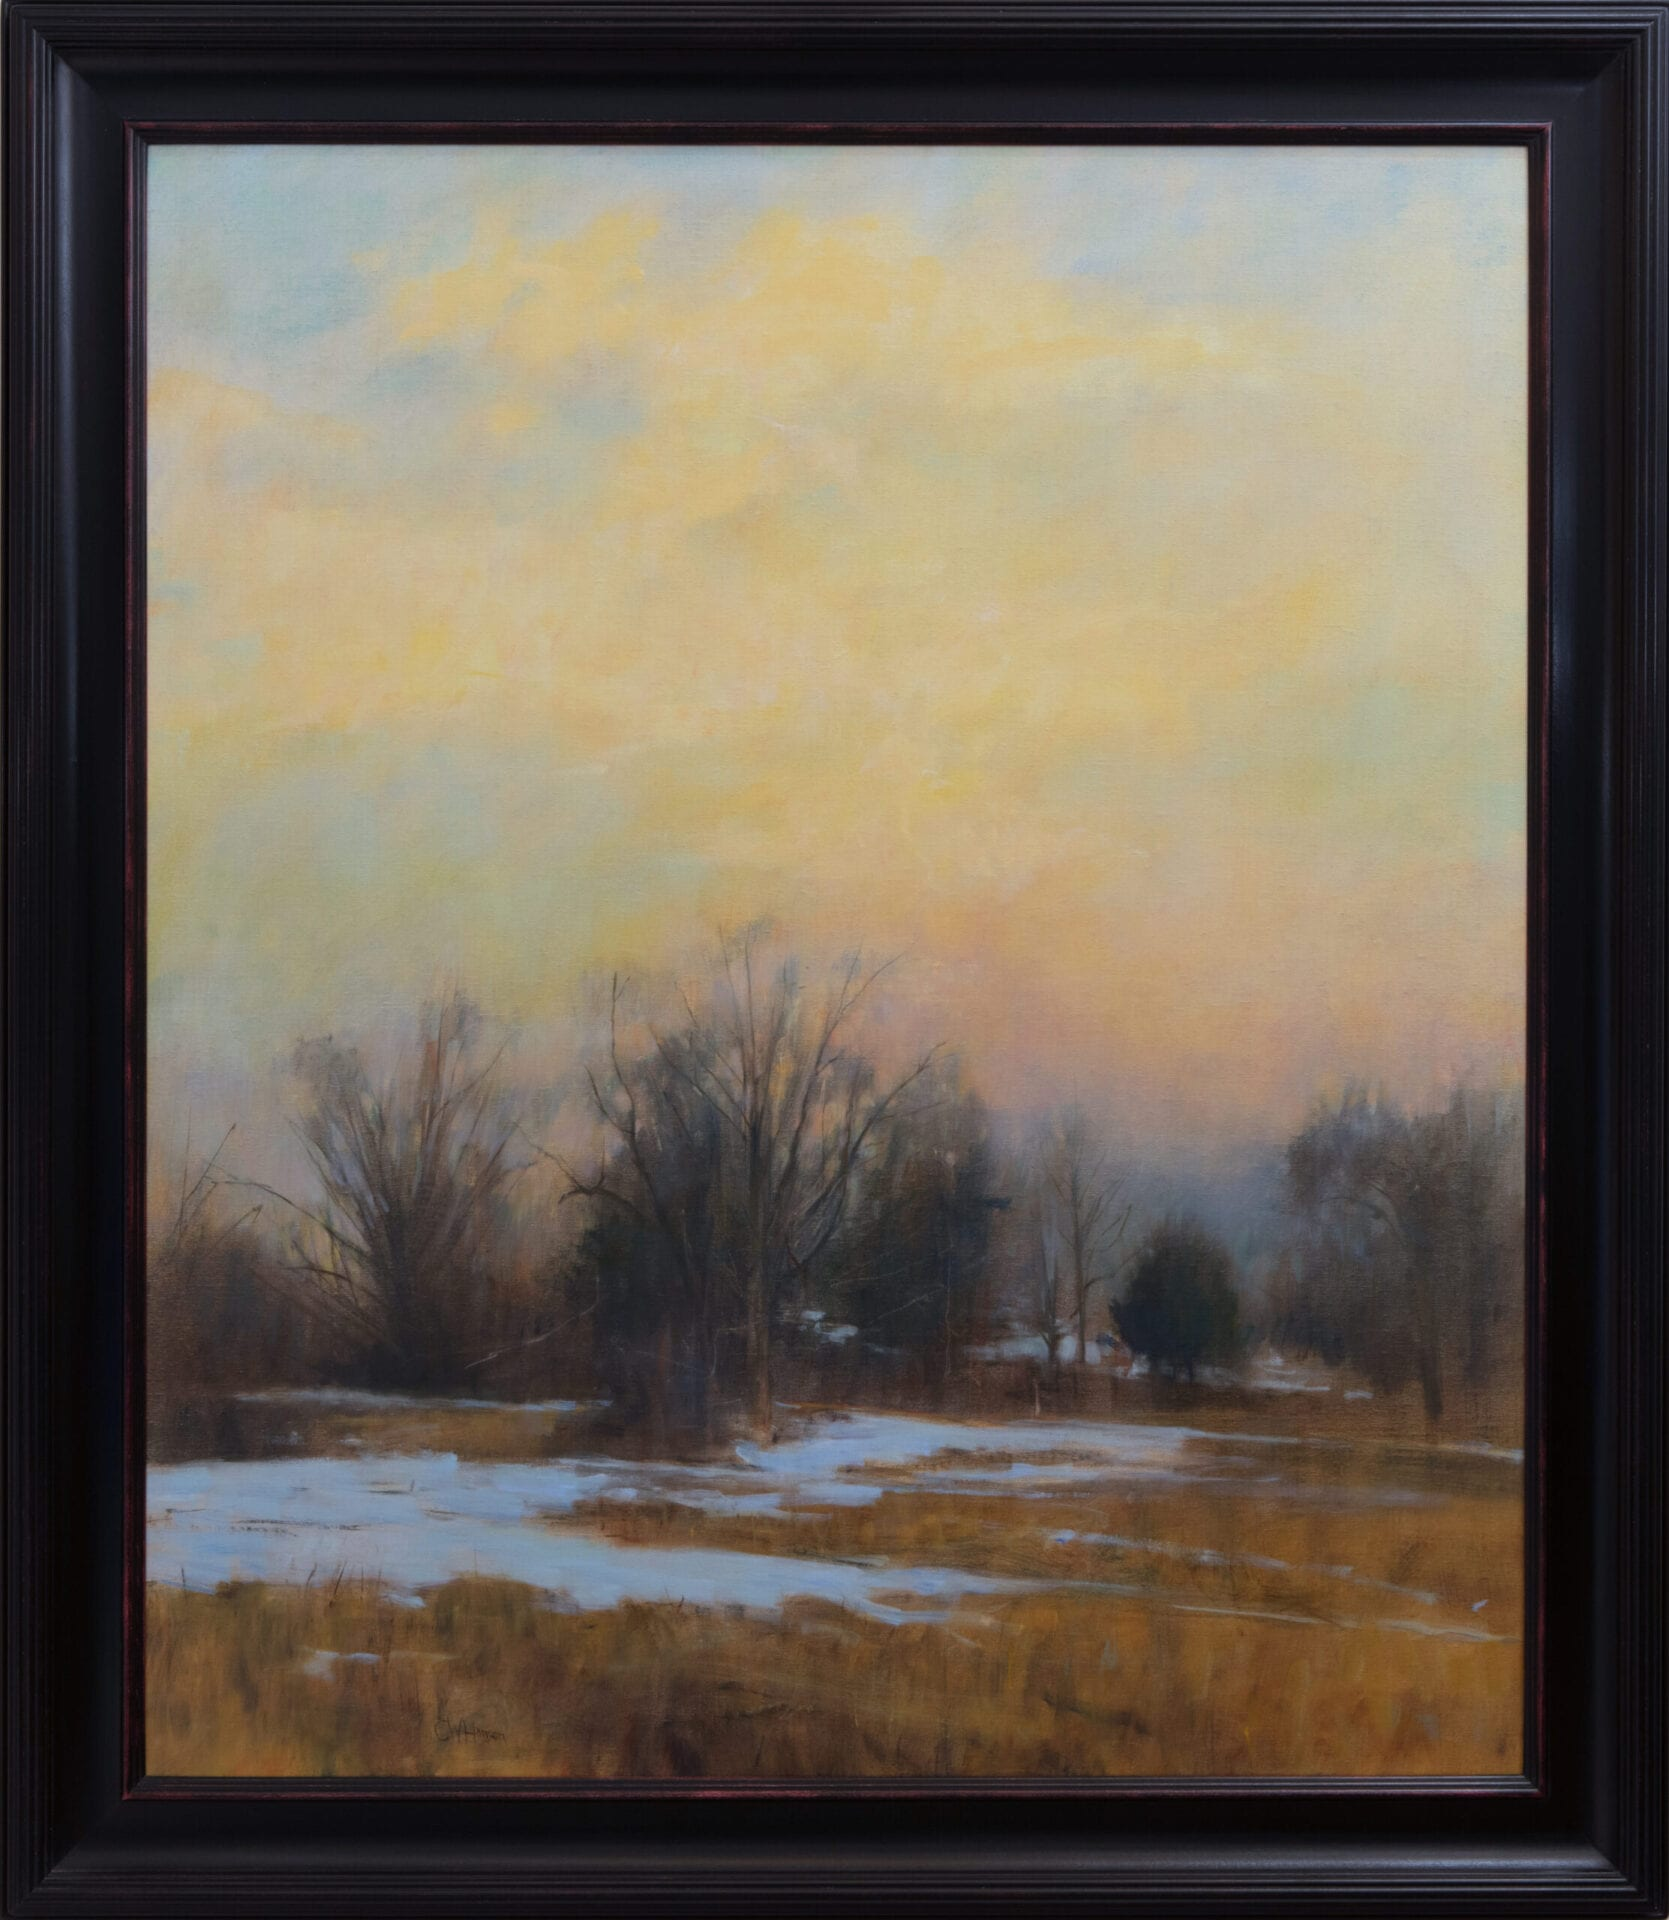 Traces of Snow | Curt Hanson | Oil on Canvas | 46 x 38.5""